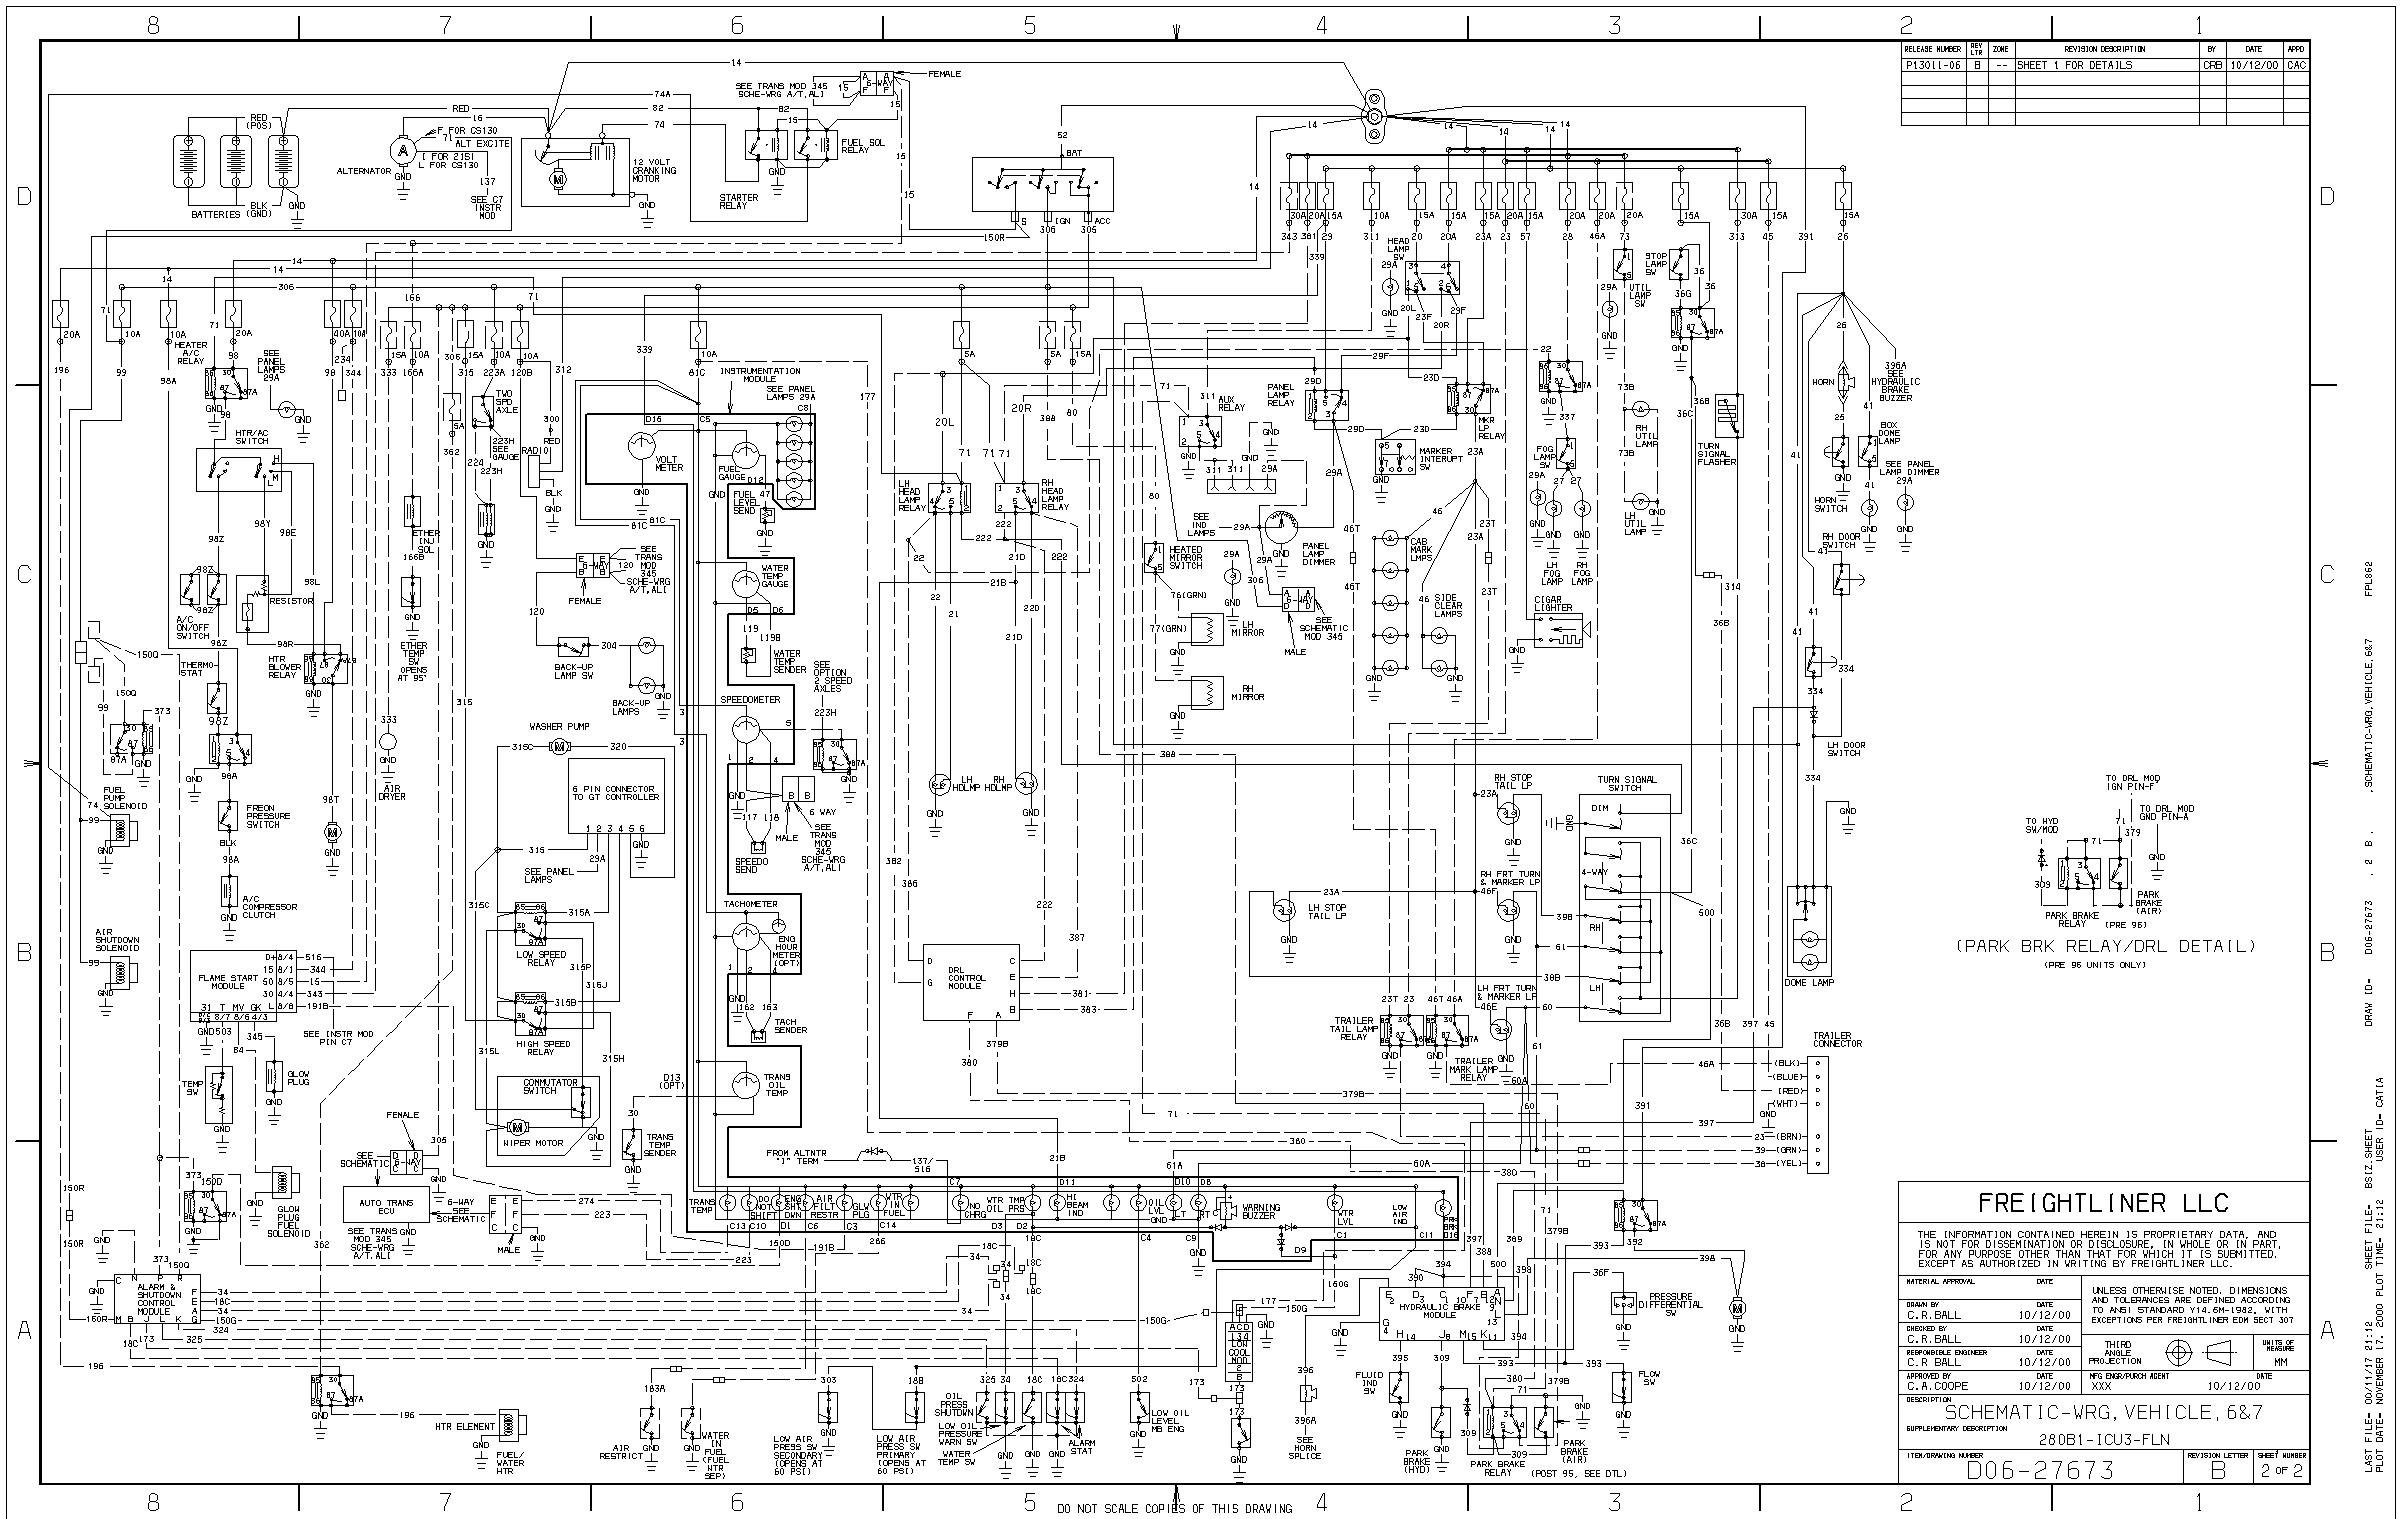 Wiring Diagram For 1998 Freightliner Fld Get Free Image About Wiring Diagram